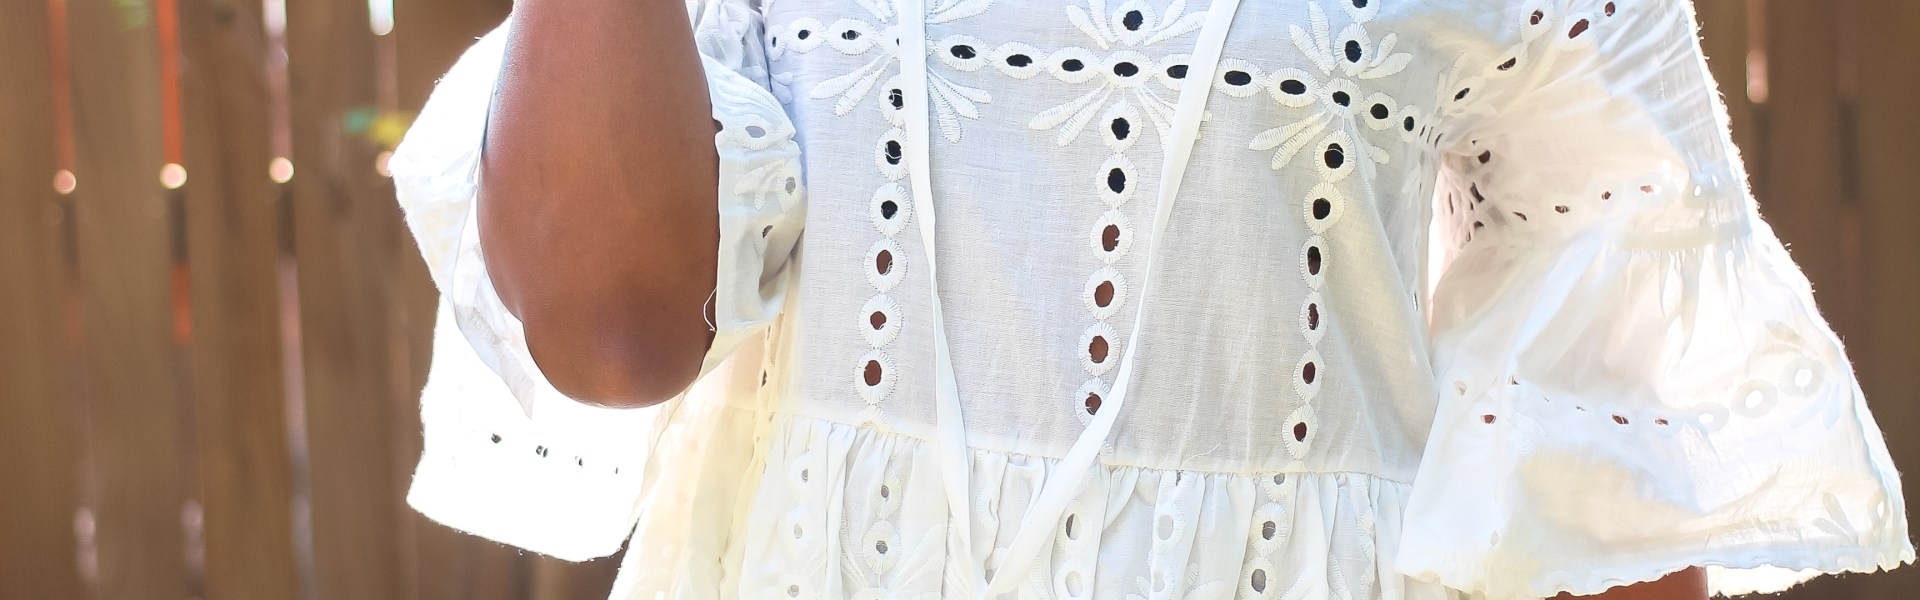 shein, beach blanket, eyelet top, transitional summer outfit, fall outfit inspo, shein eyelet dress, transitional summer dress, transitional fall dress, black fashion blogger, dallas blogger, henri bendel sunglasses, celine sunglass dupe